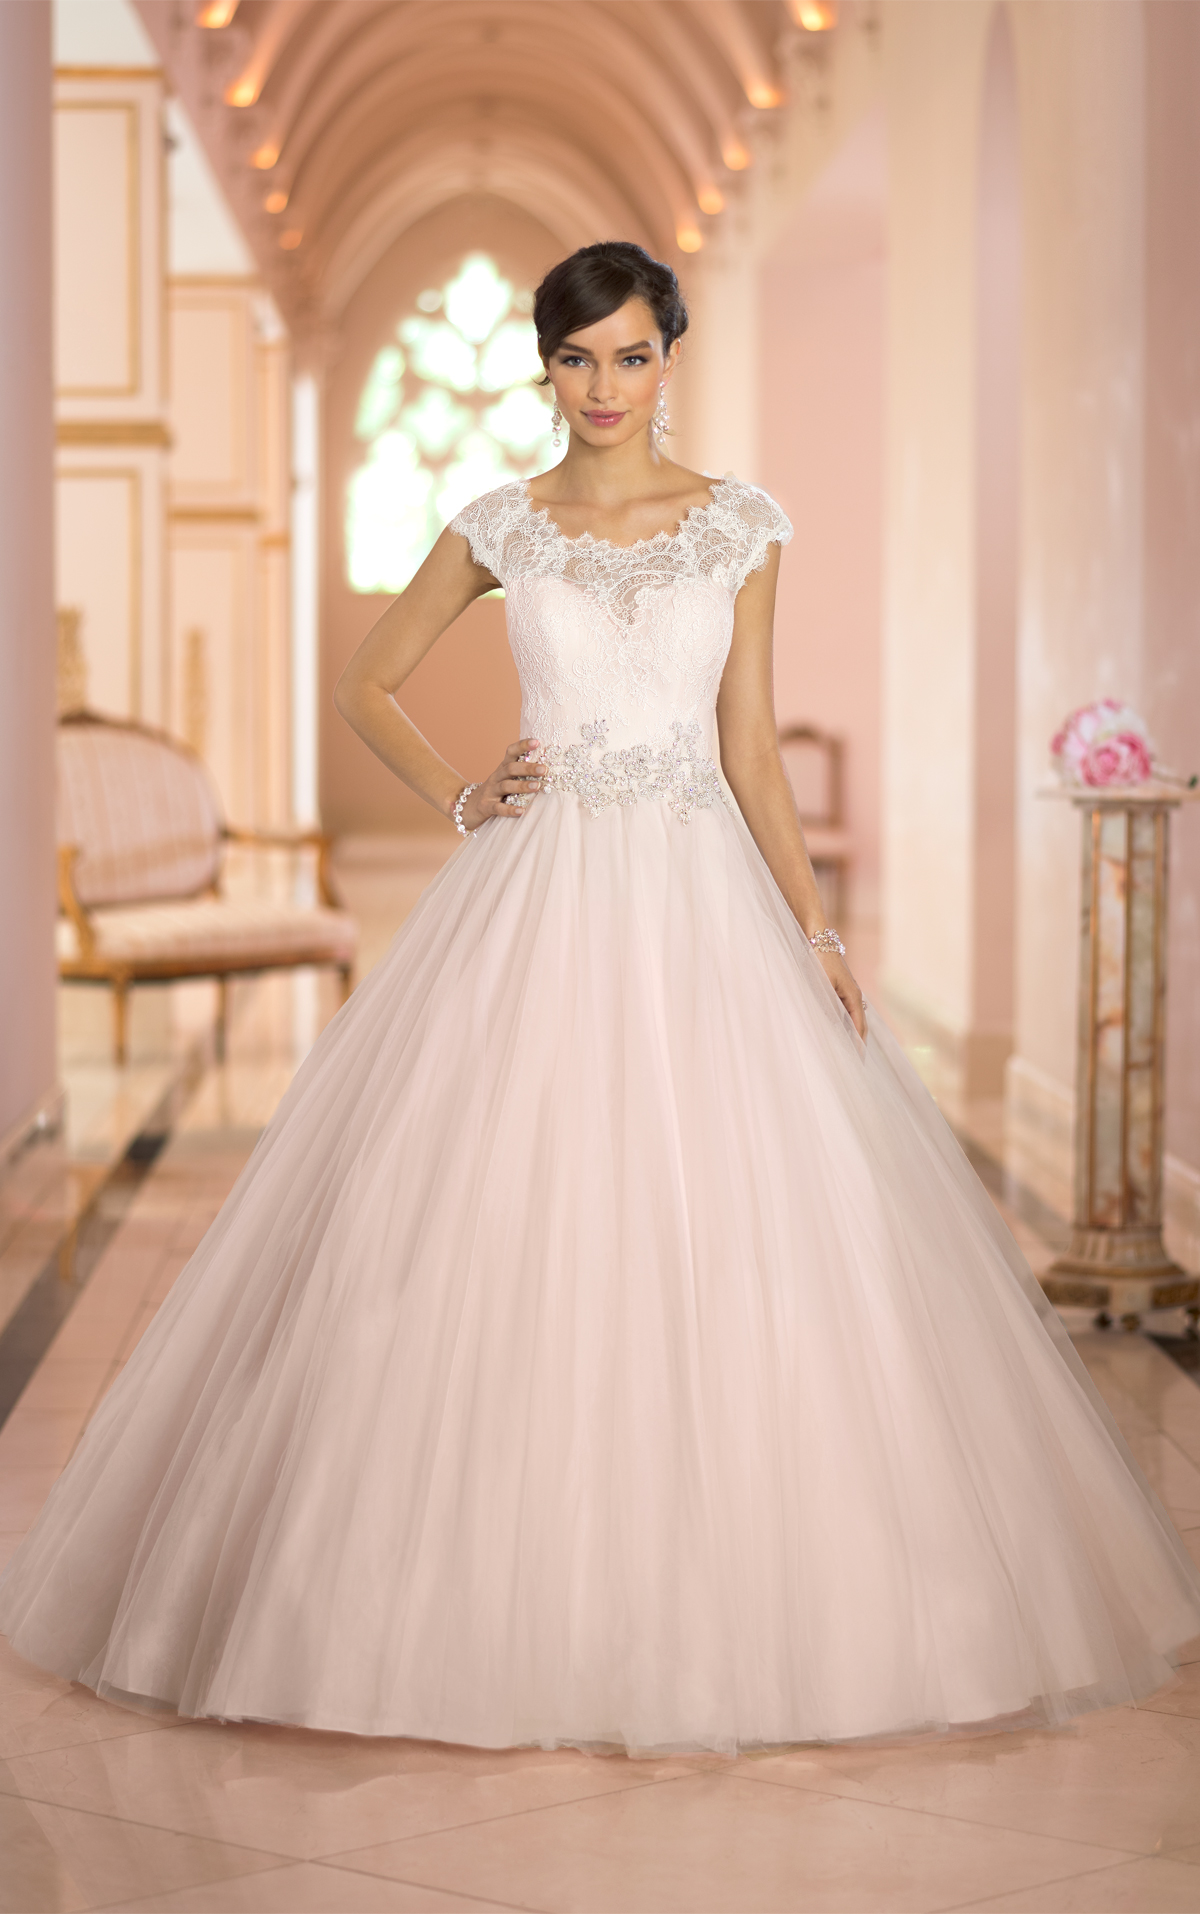 stella-york-wedding-dresses-2014-19-01162014